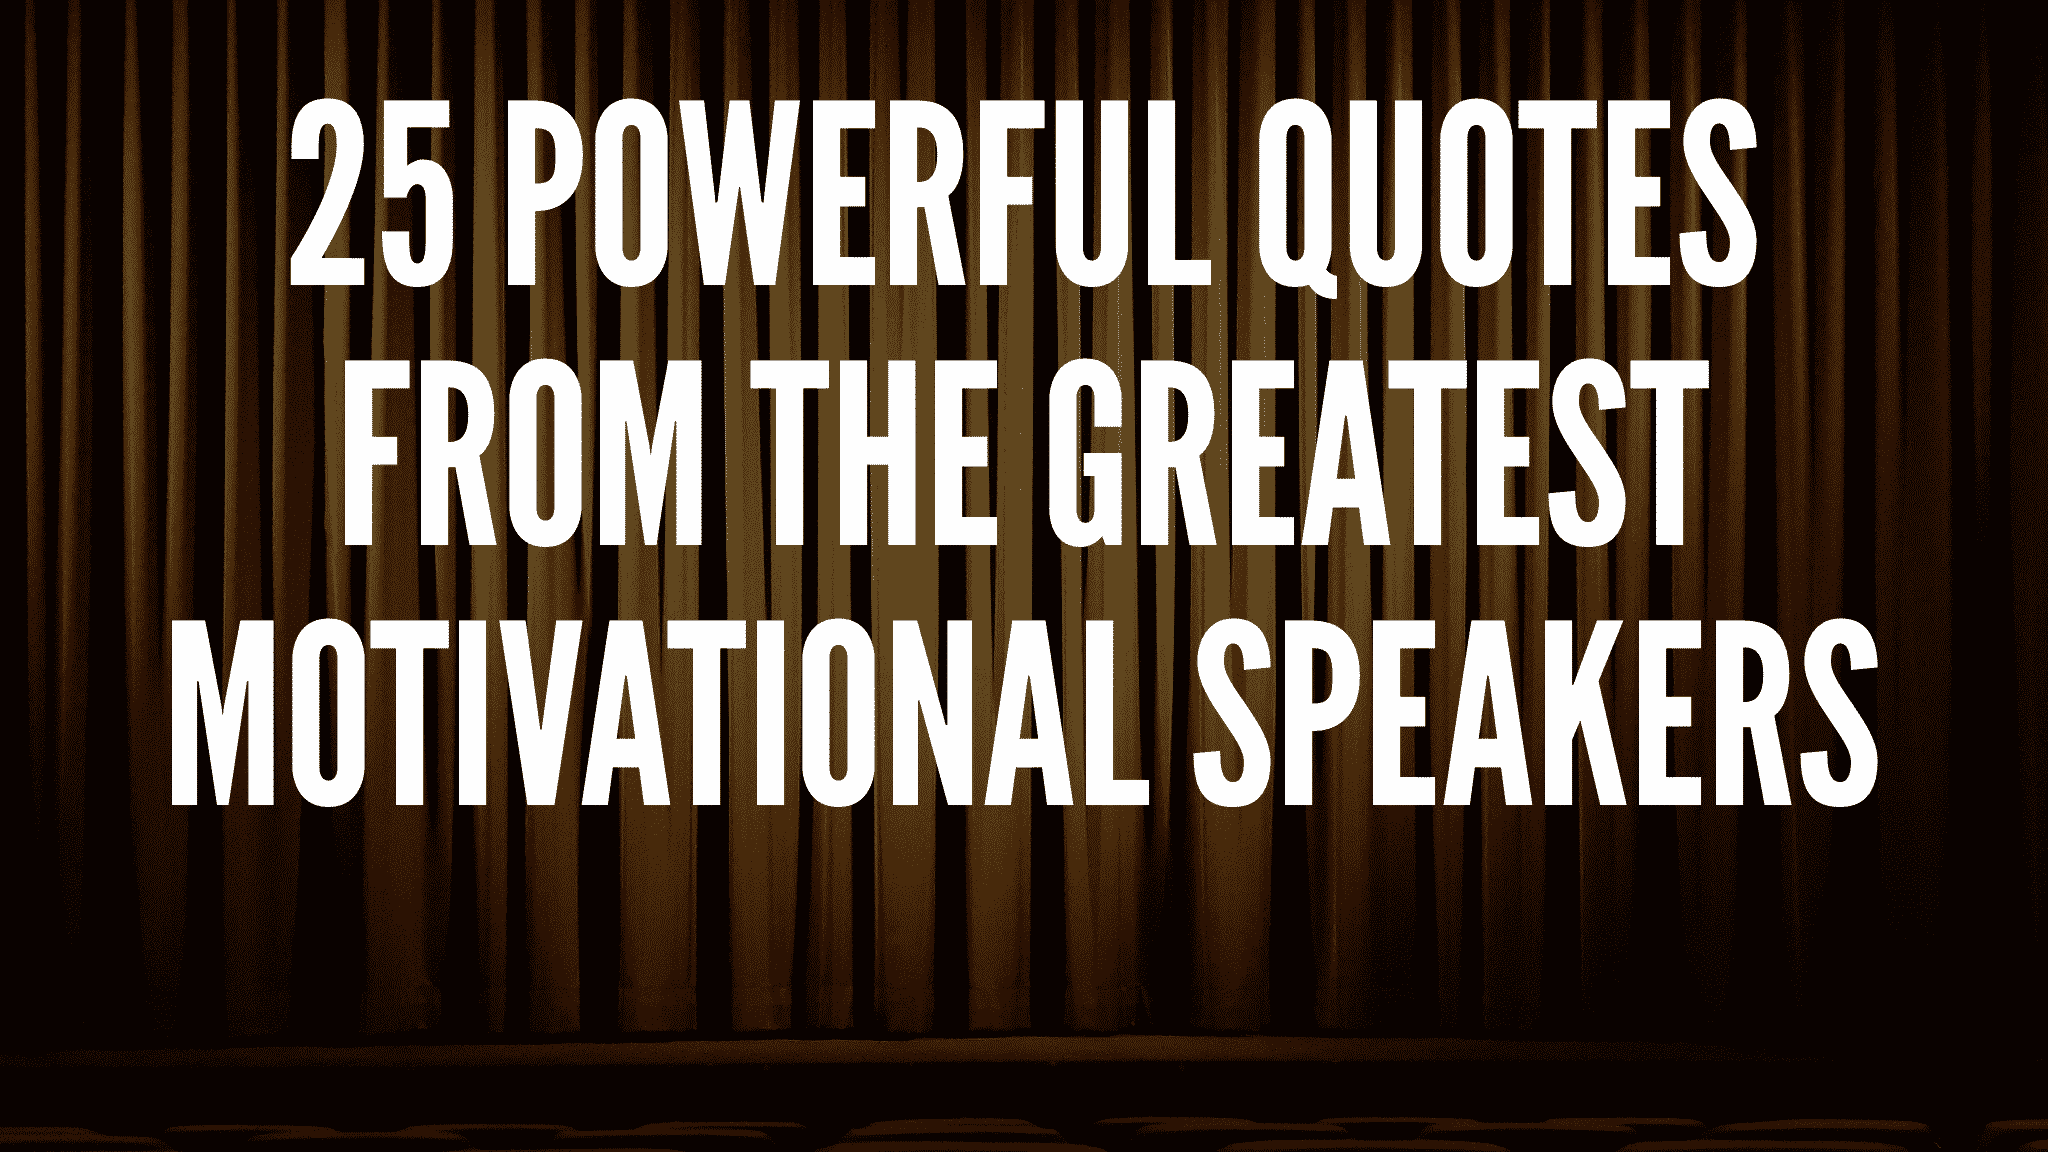 25 Powerful Quotes From The Greatest Motivational Speakers